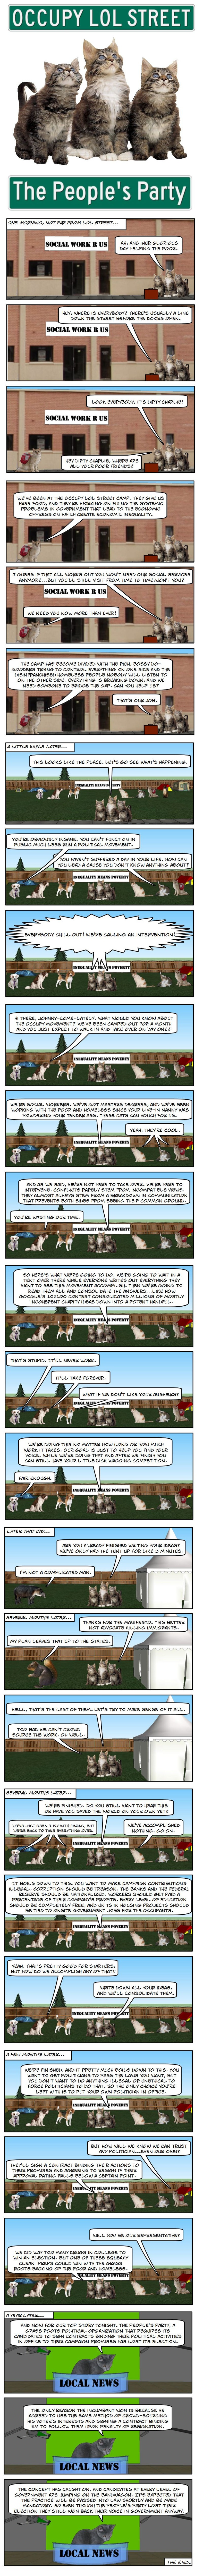 (Comic) Occupy LOL Street: The People's Party